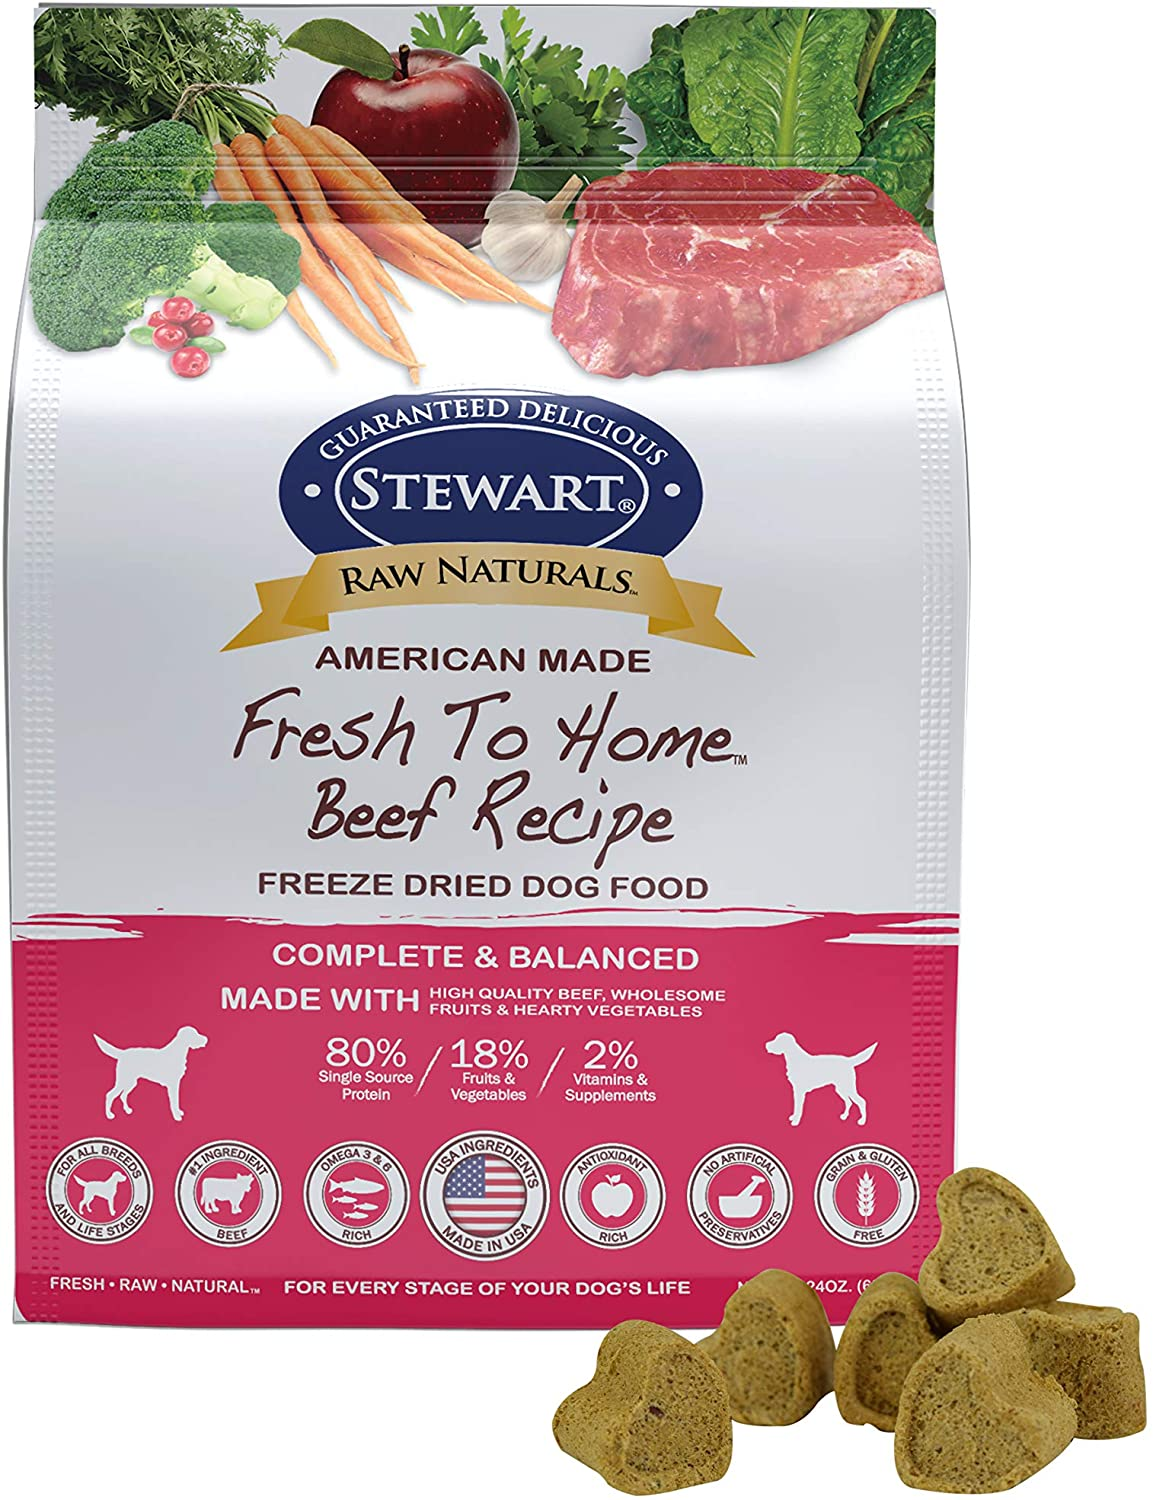 Stewart Raw Naturals Freeze Dried Dog Food Grain Free Made In Usa With Beef Fruits Vegetables For Fresh To Home All Natural Recipe 24 Oz Pet Supplies